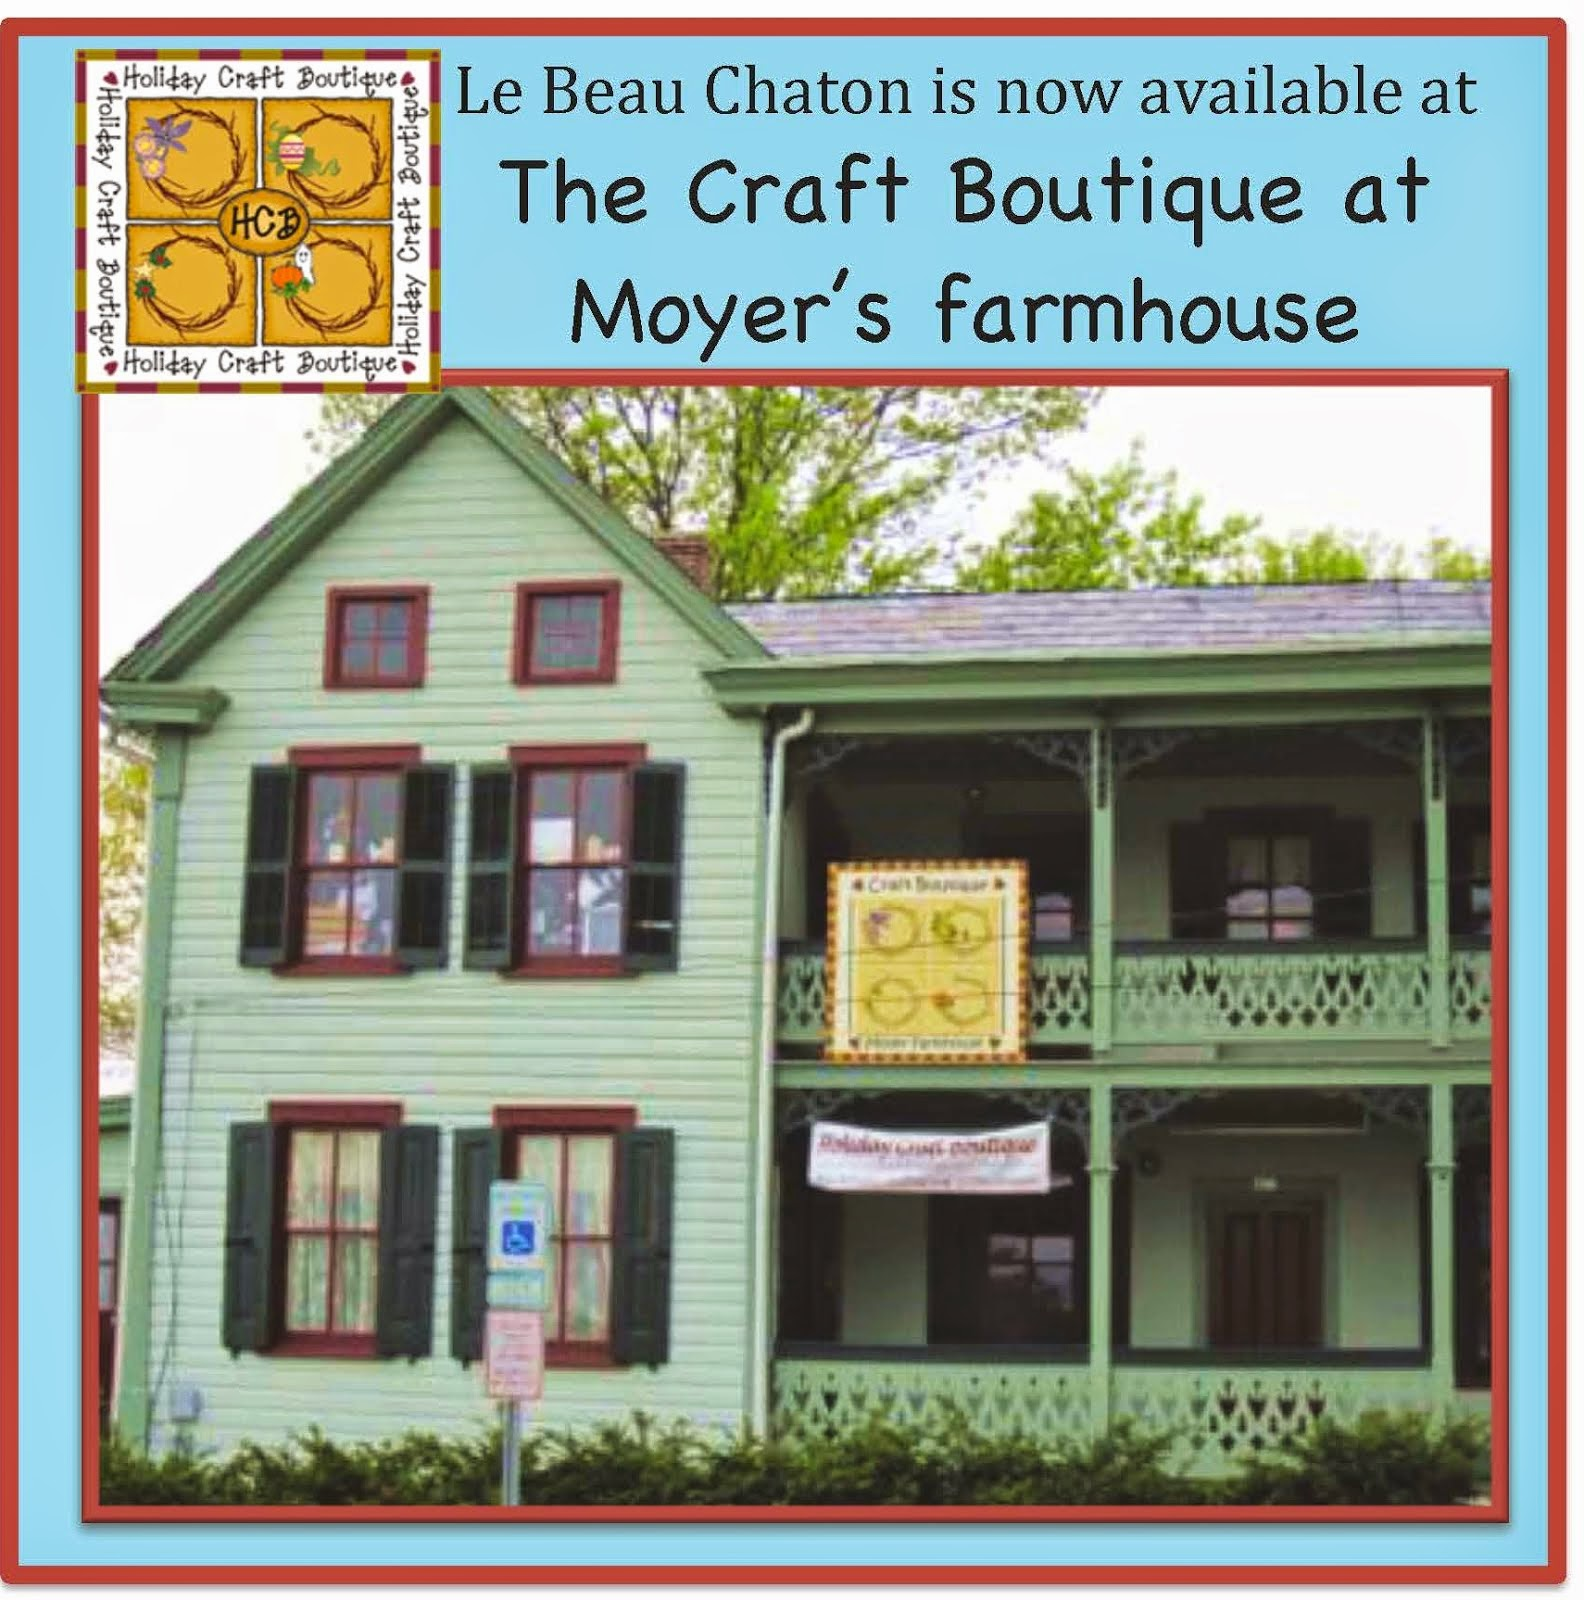 I'm delighted to have my work for sale in the Craft Boutique at Moyers farmhouse